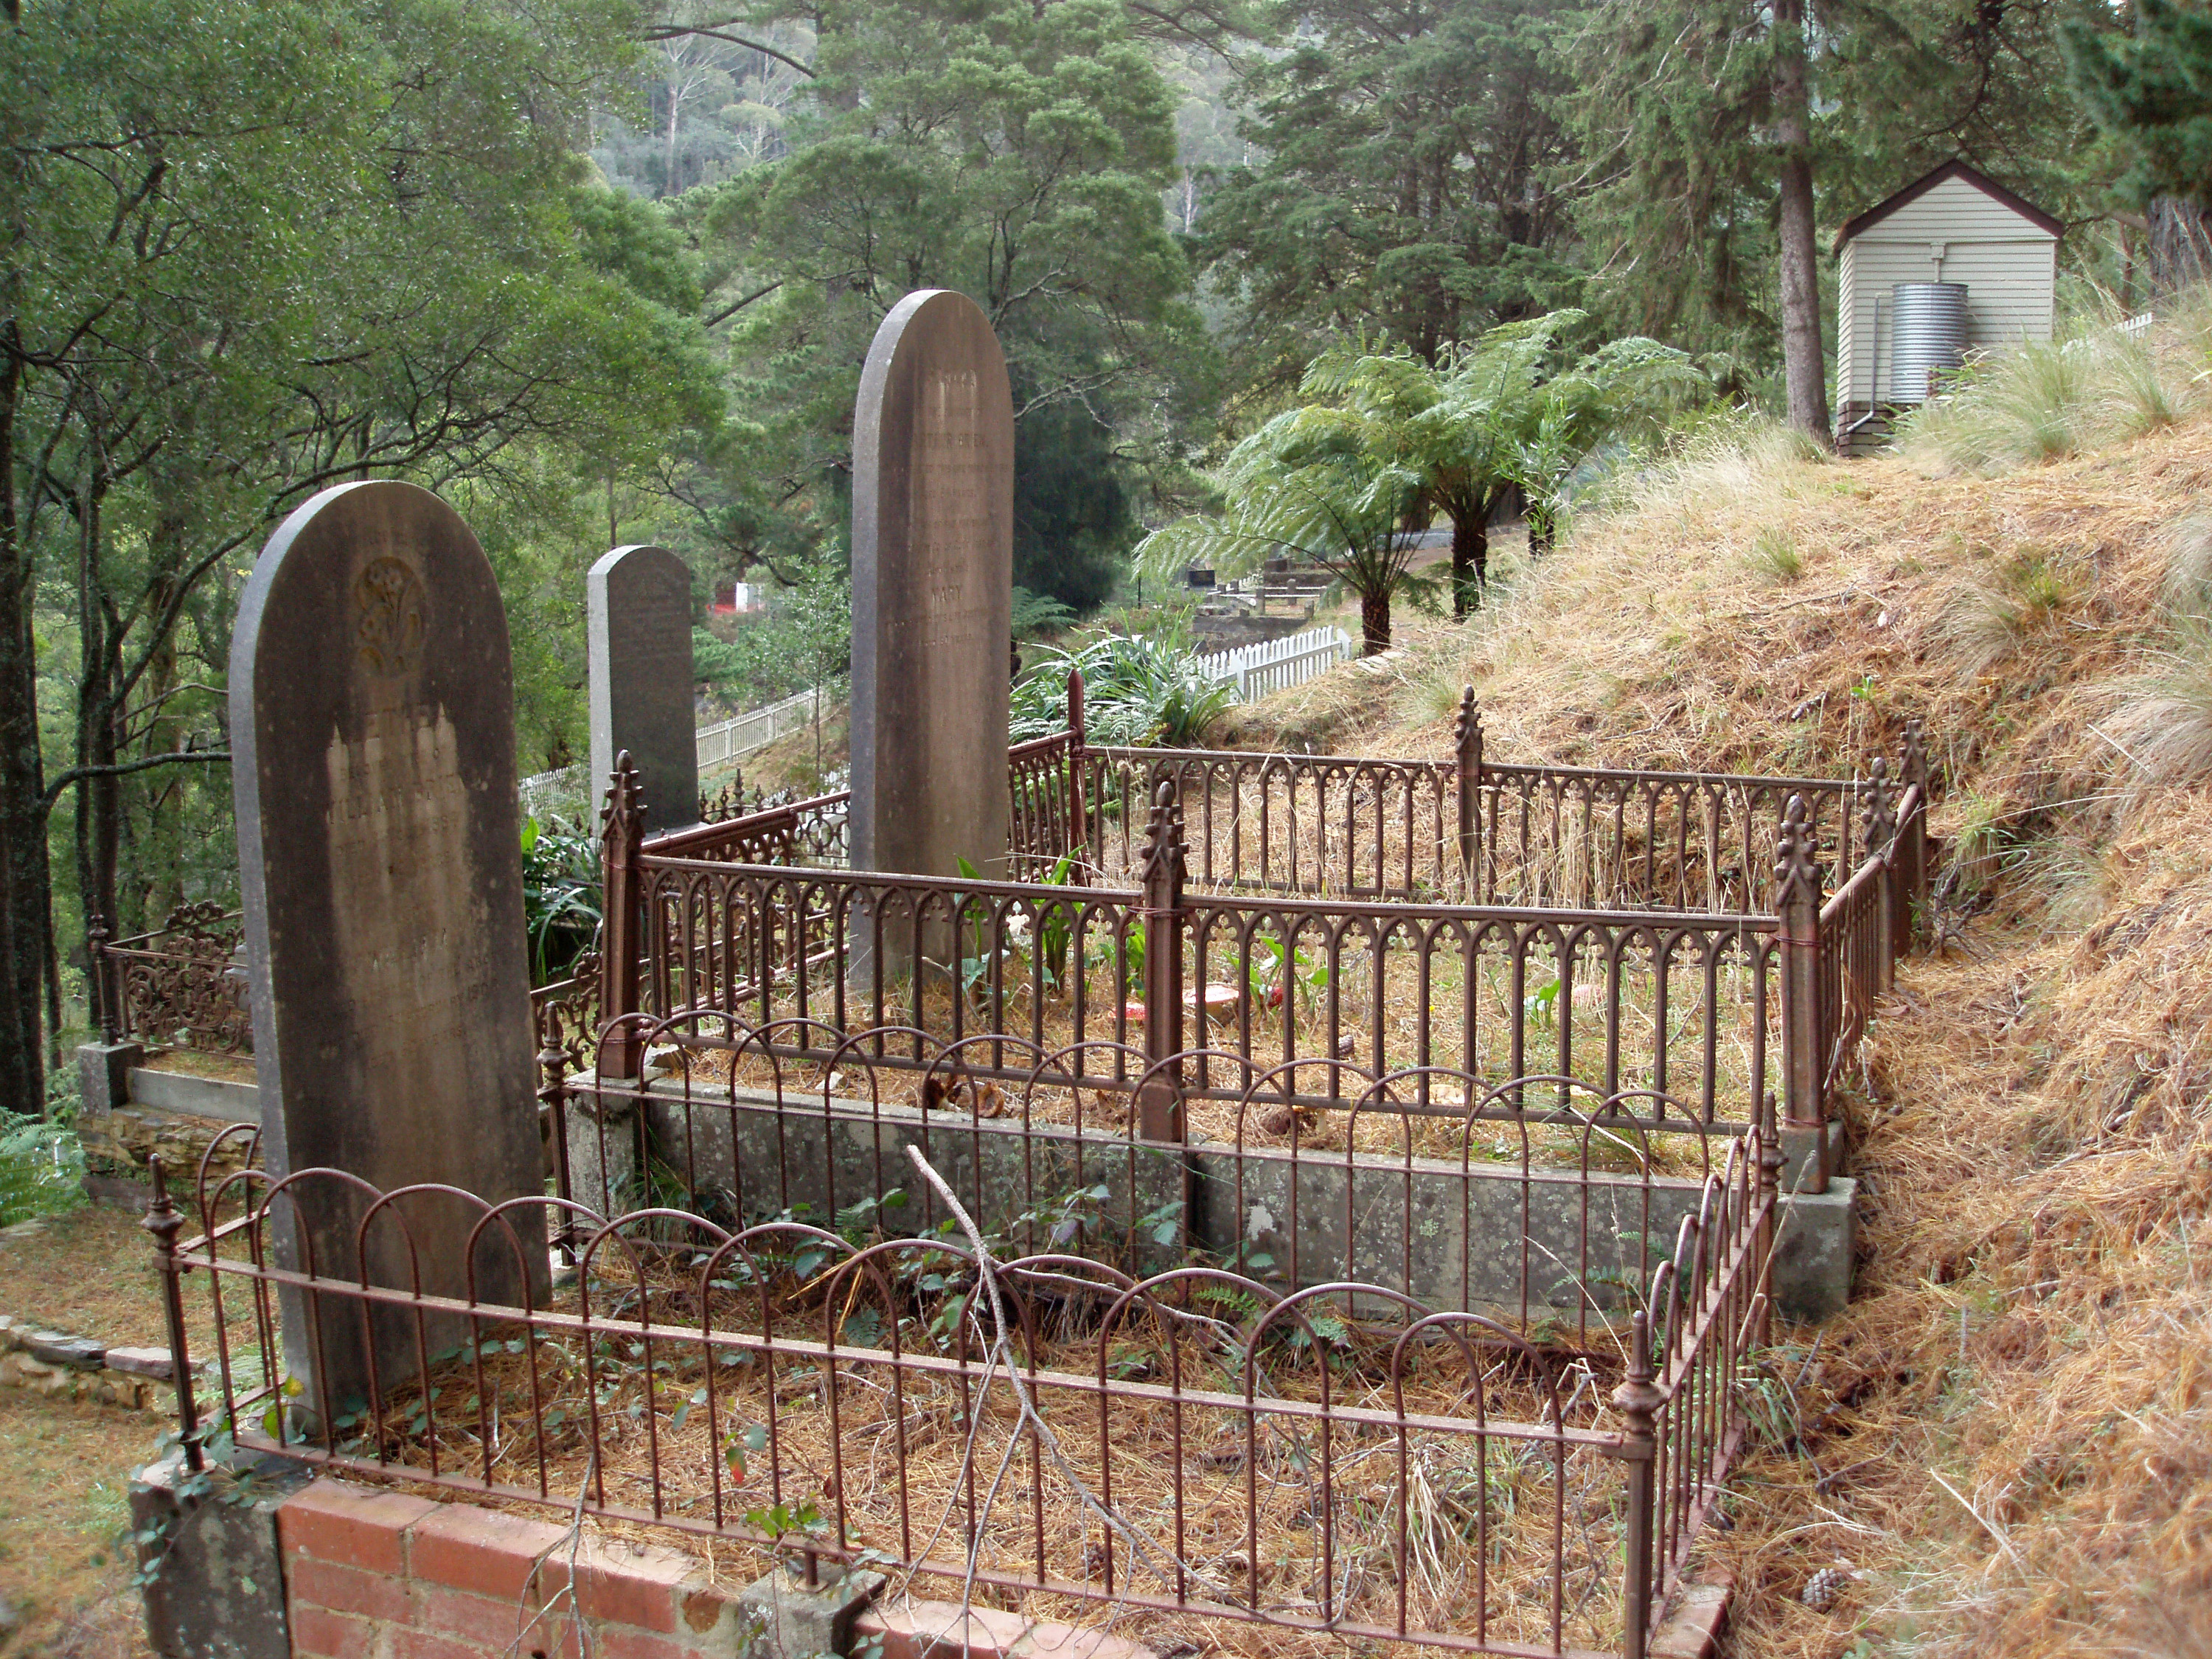 graves and headstones in an historic  graveyard, walhalla